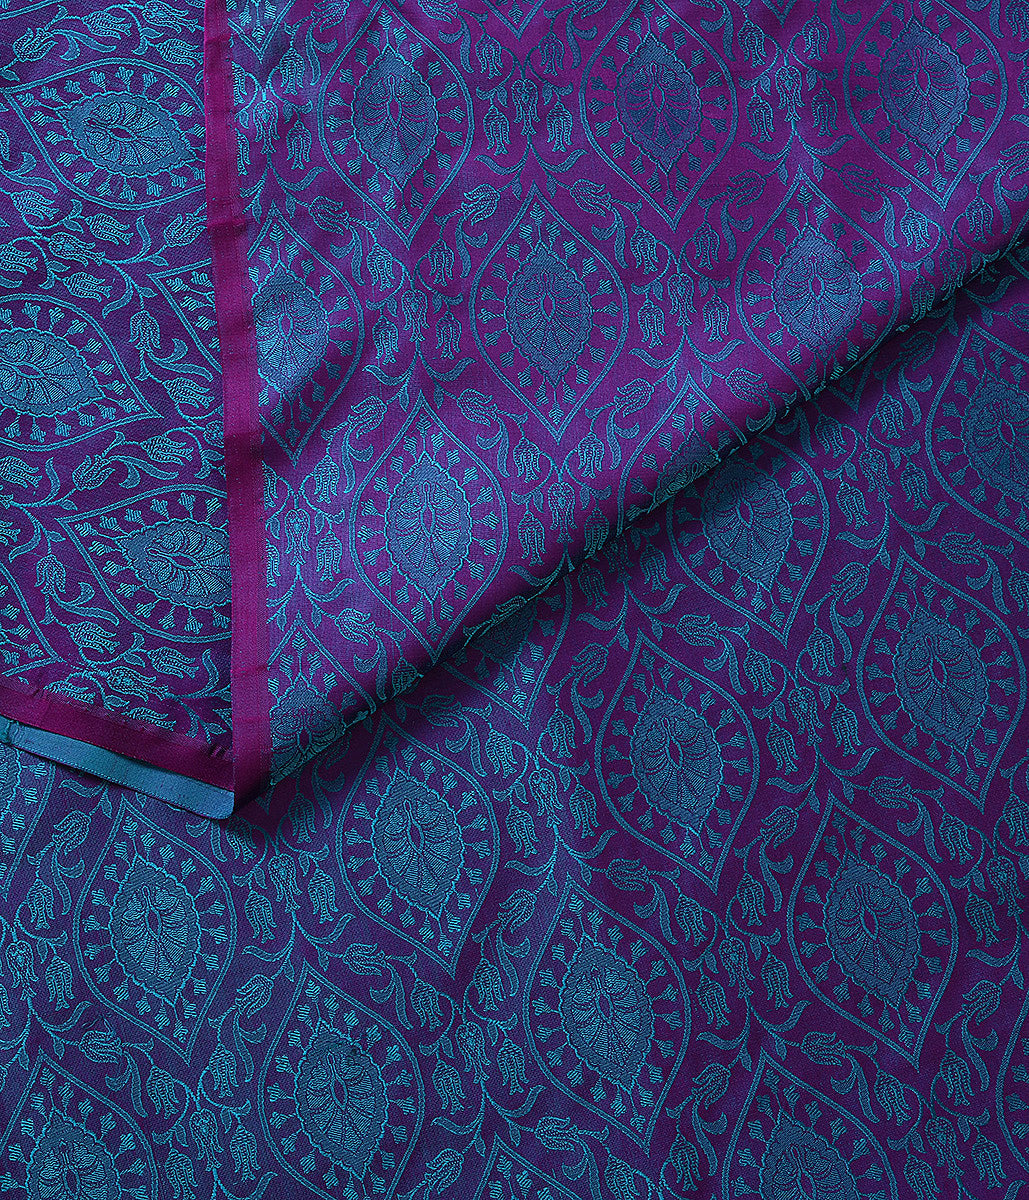 Handwoven Purple and Turquoise Tanchoi Fabric